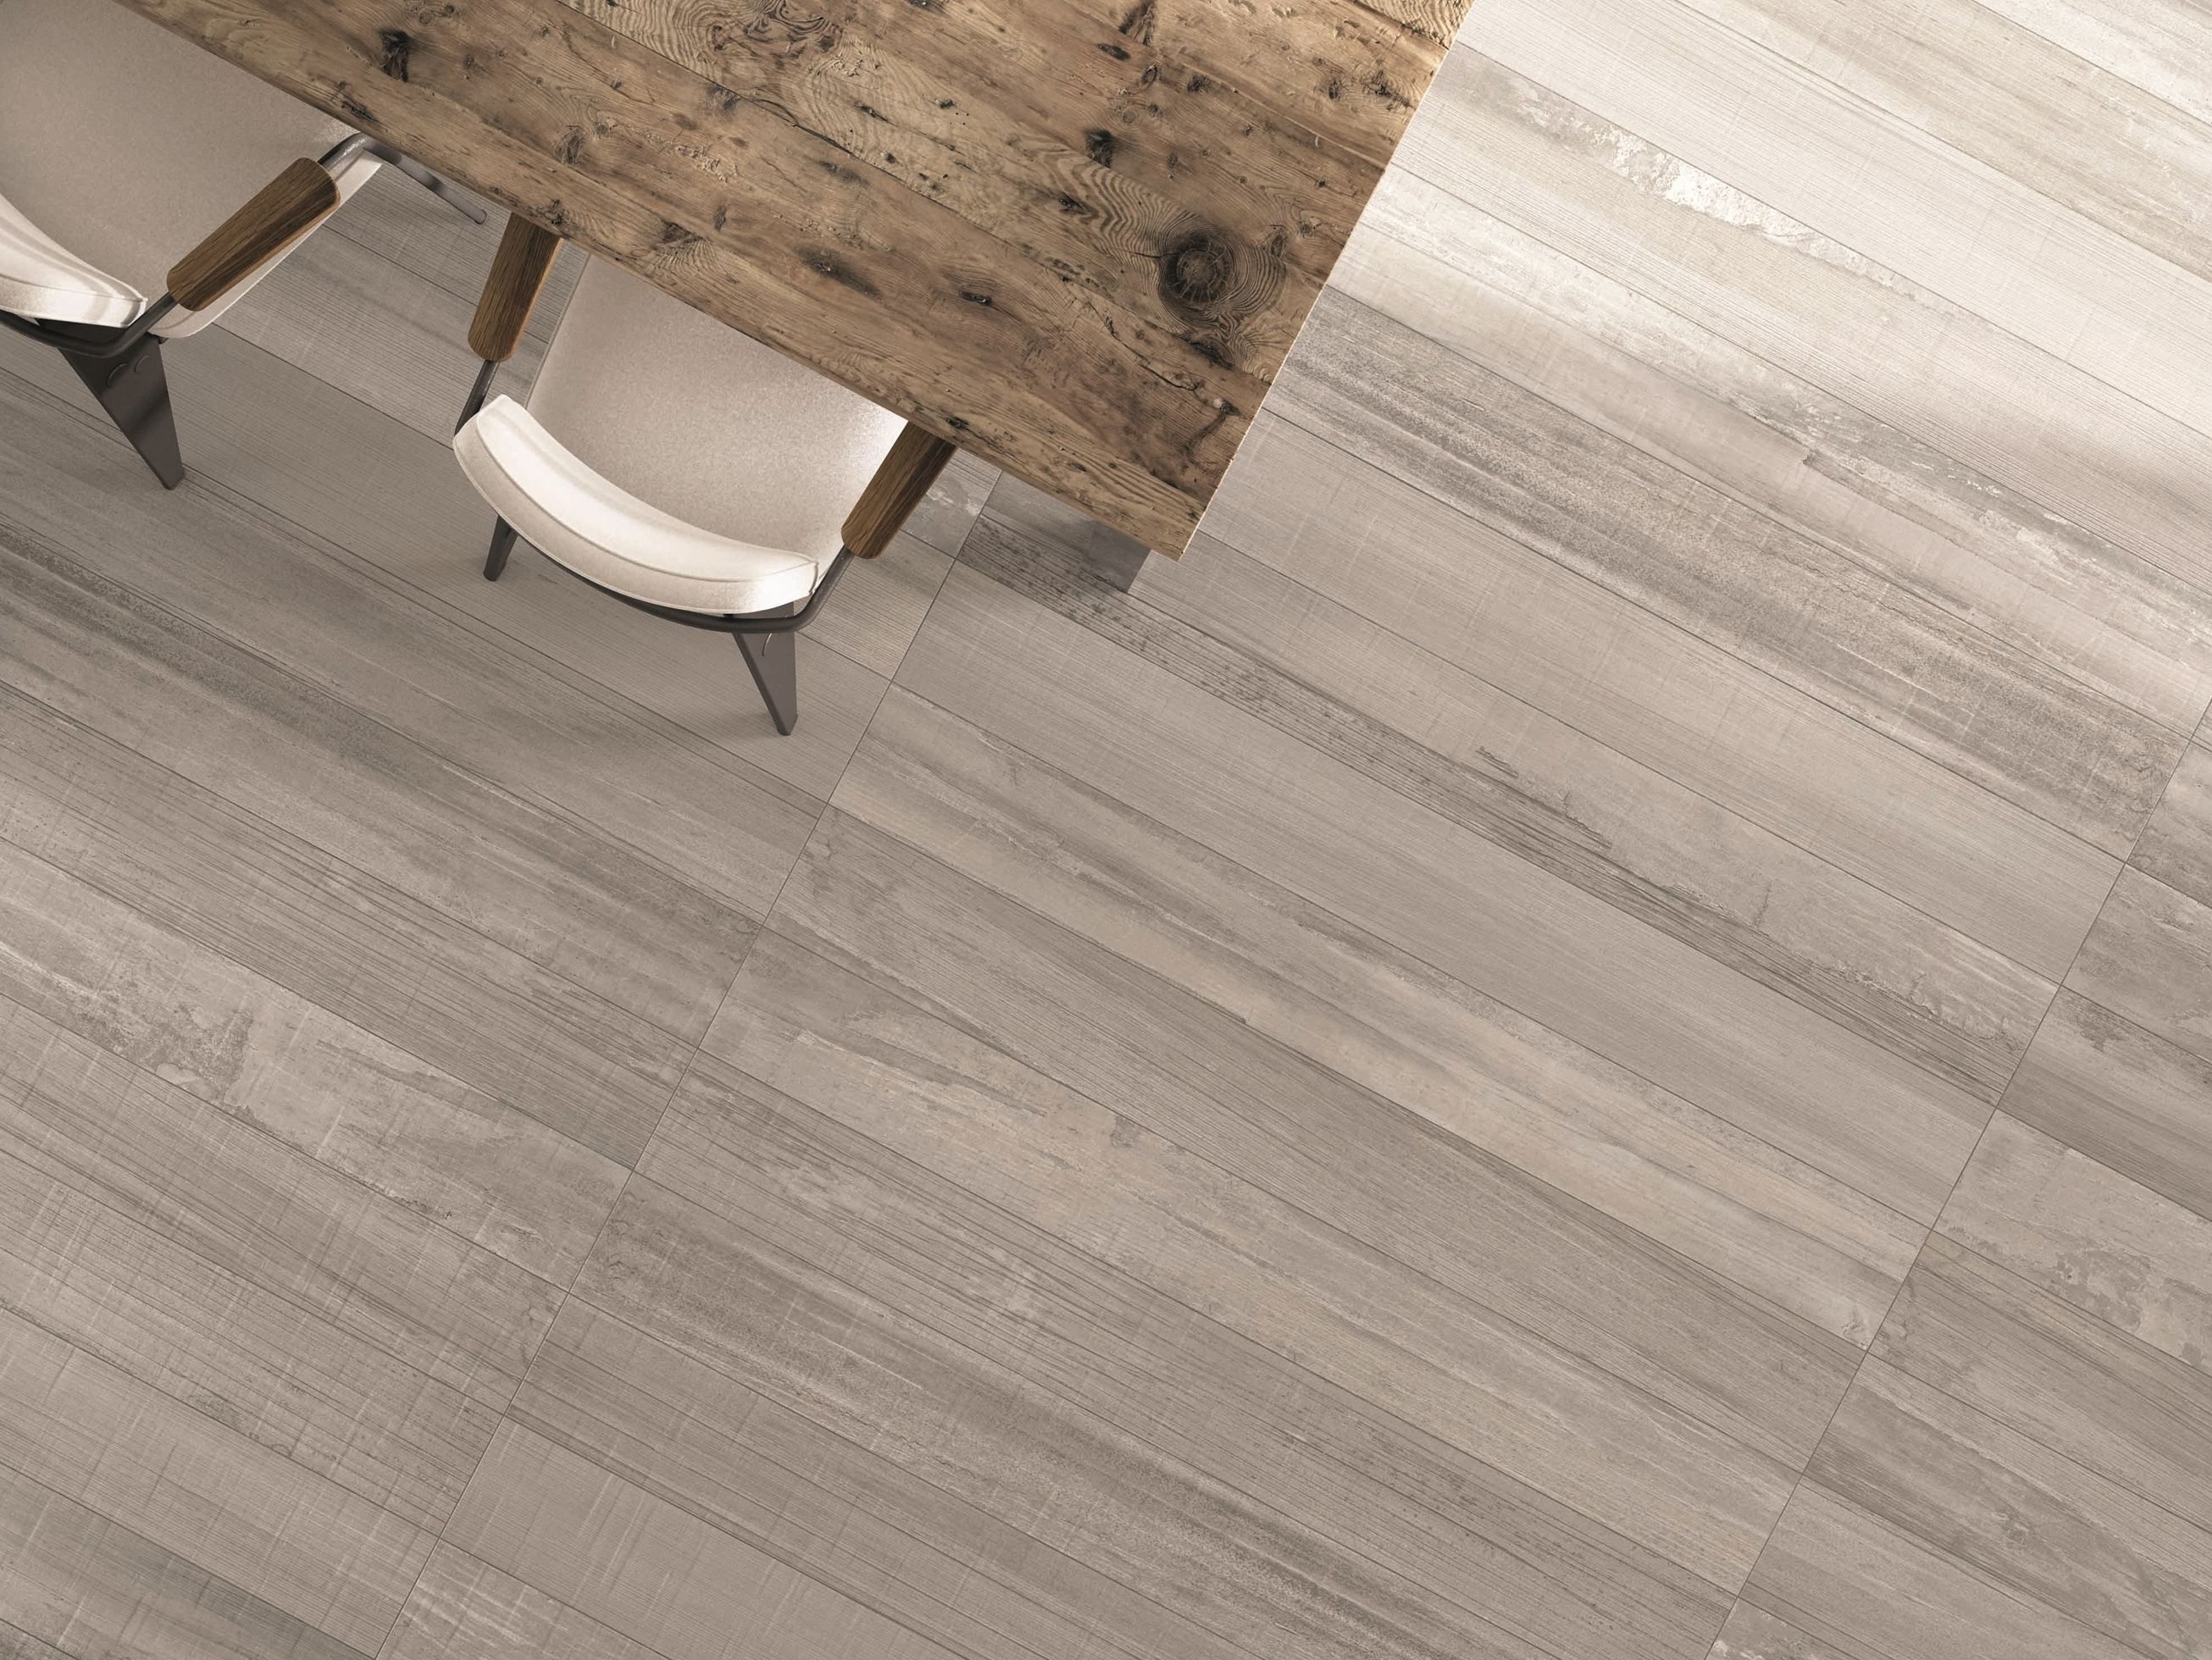 Porcelain stoneware wall floor tiles bali by ariana for Which floor or what floor